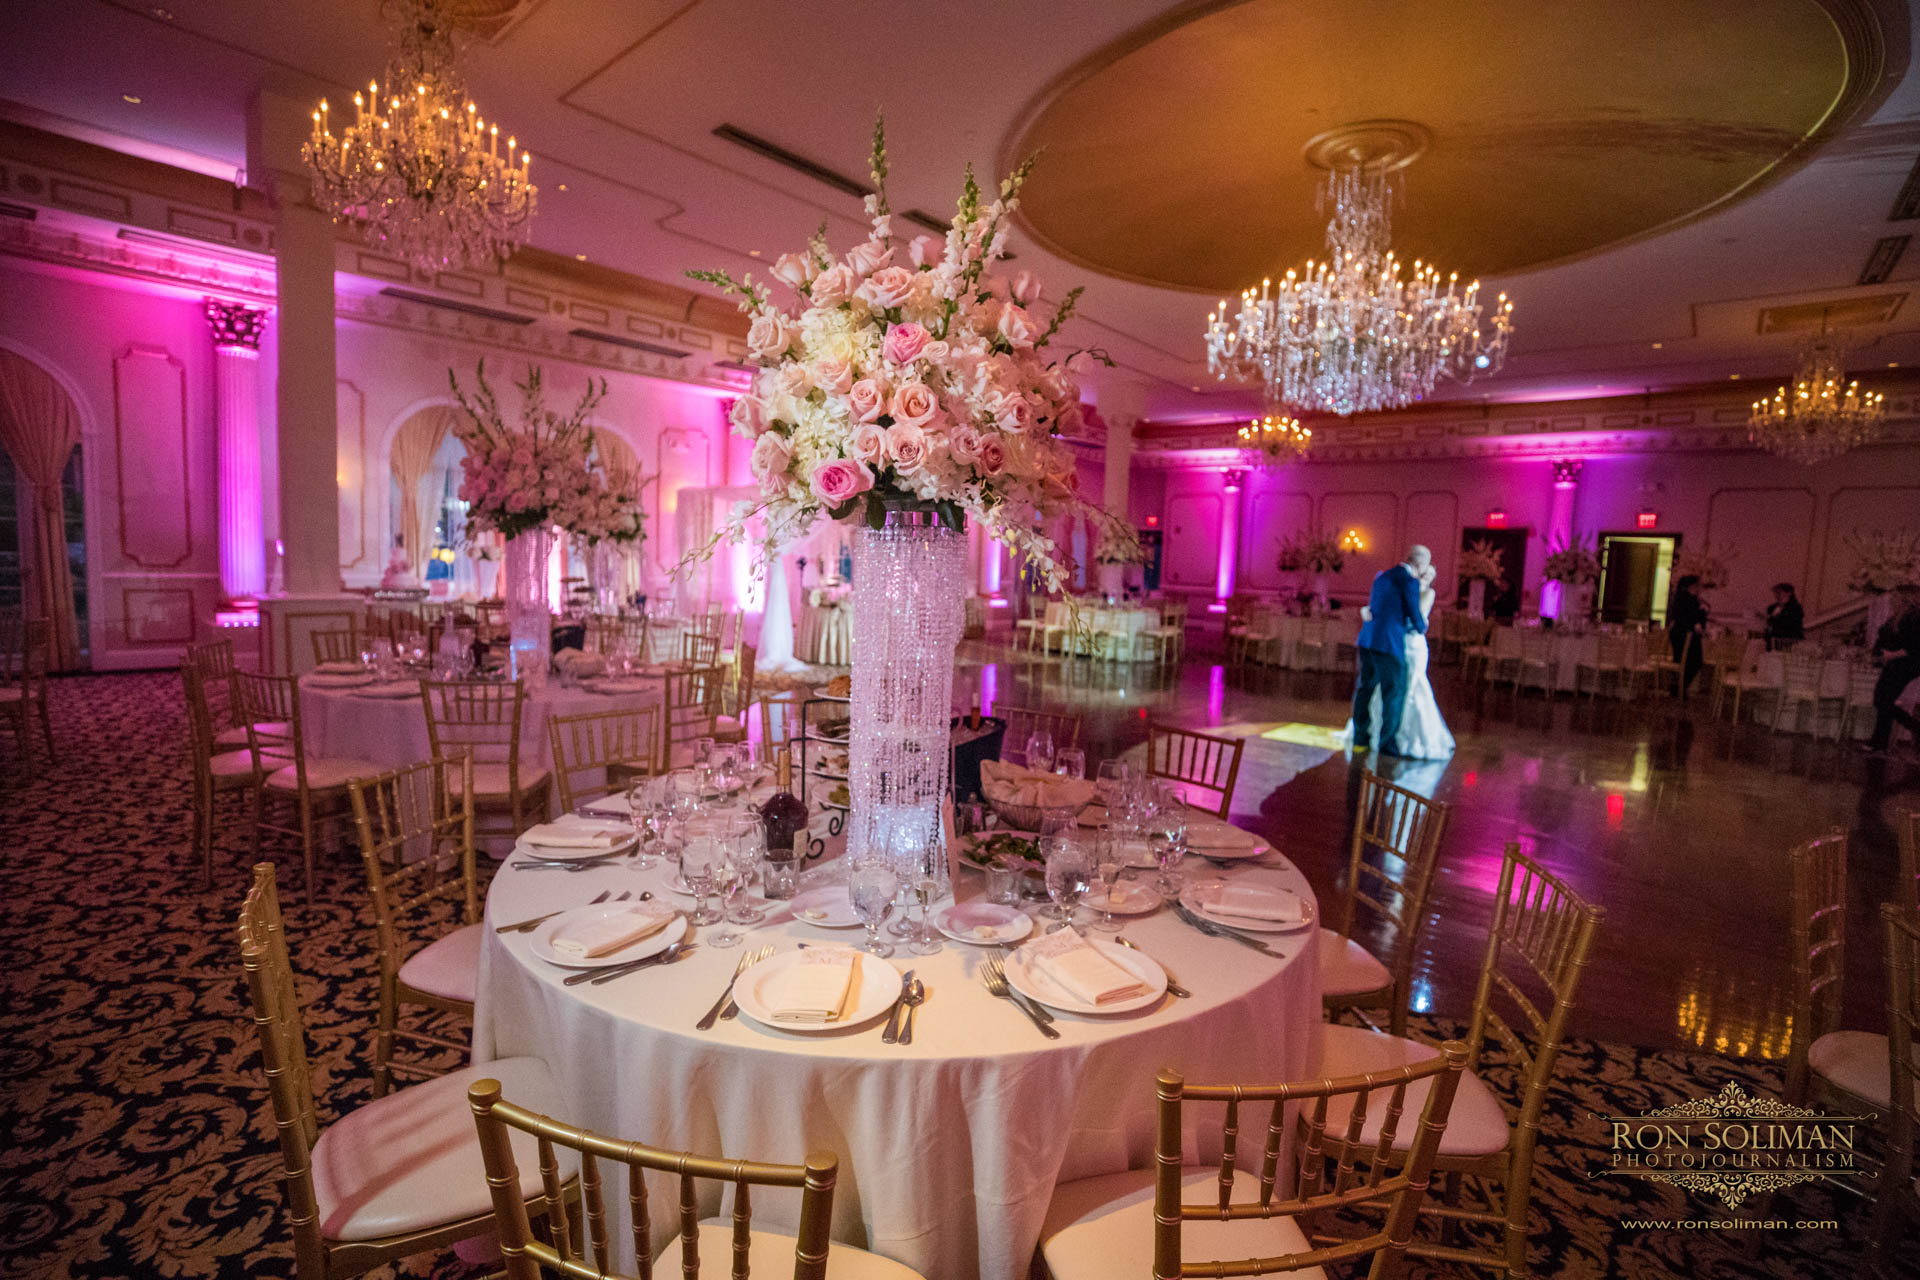 THE MERION WEDDING LM 25